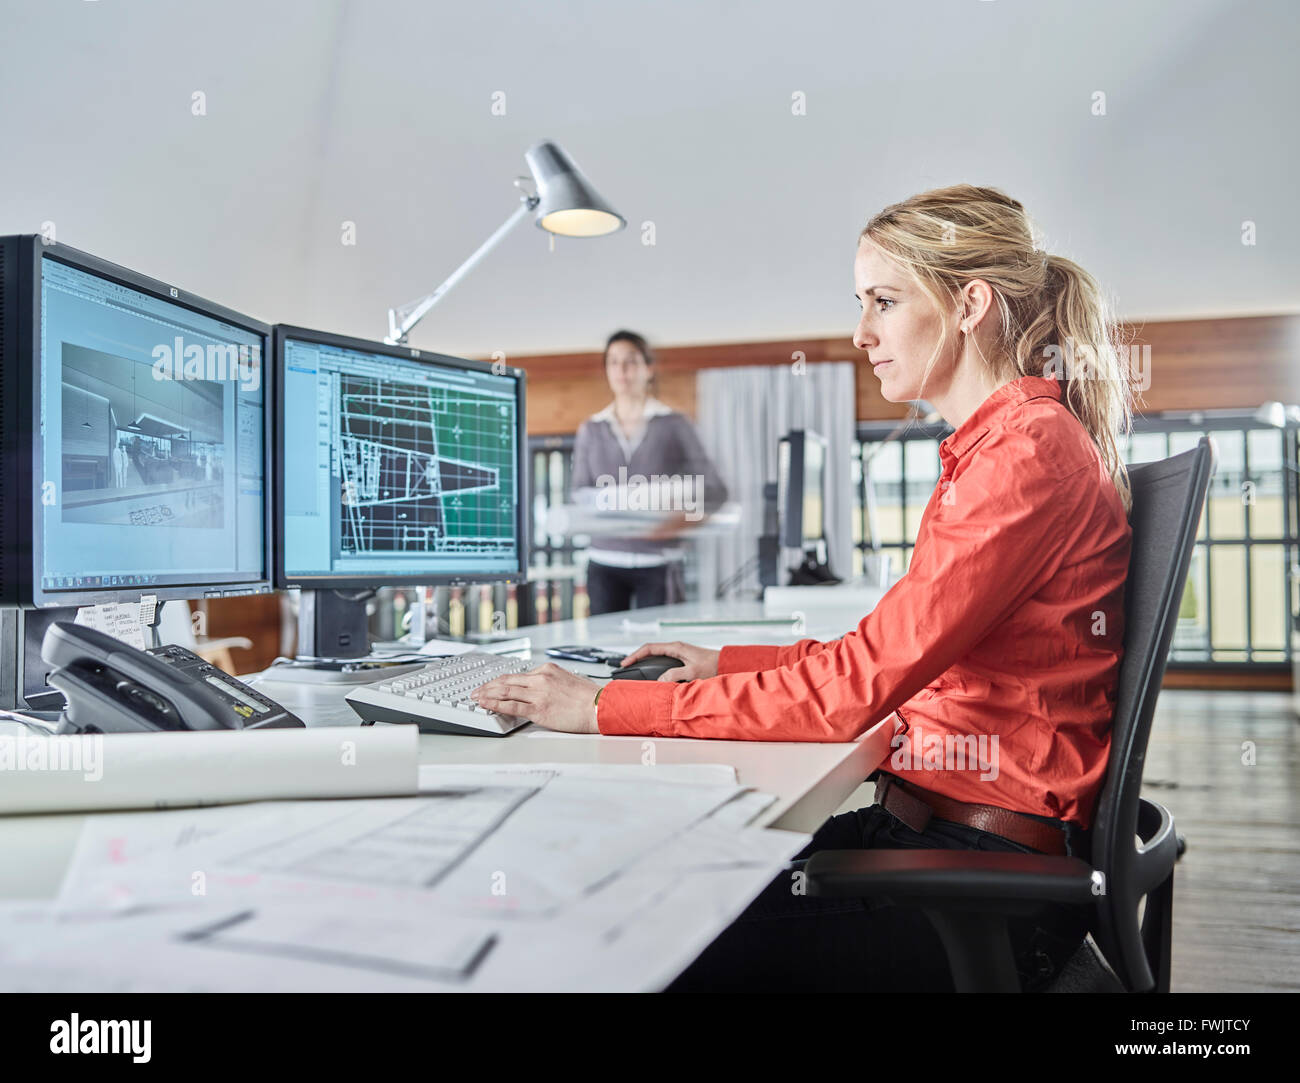 Architect sitting at the computer at work, Austria - Stock Image